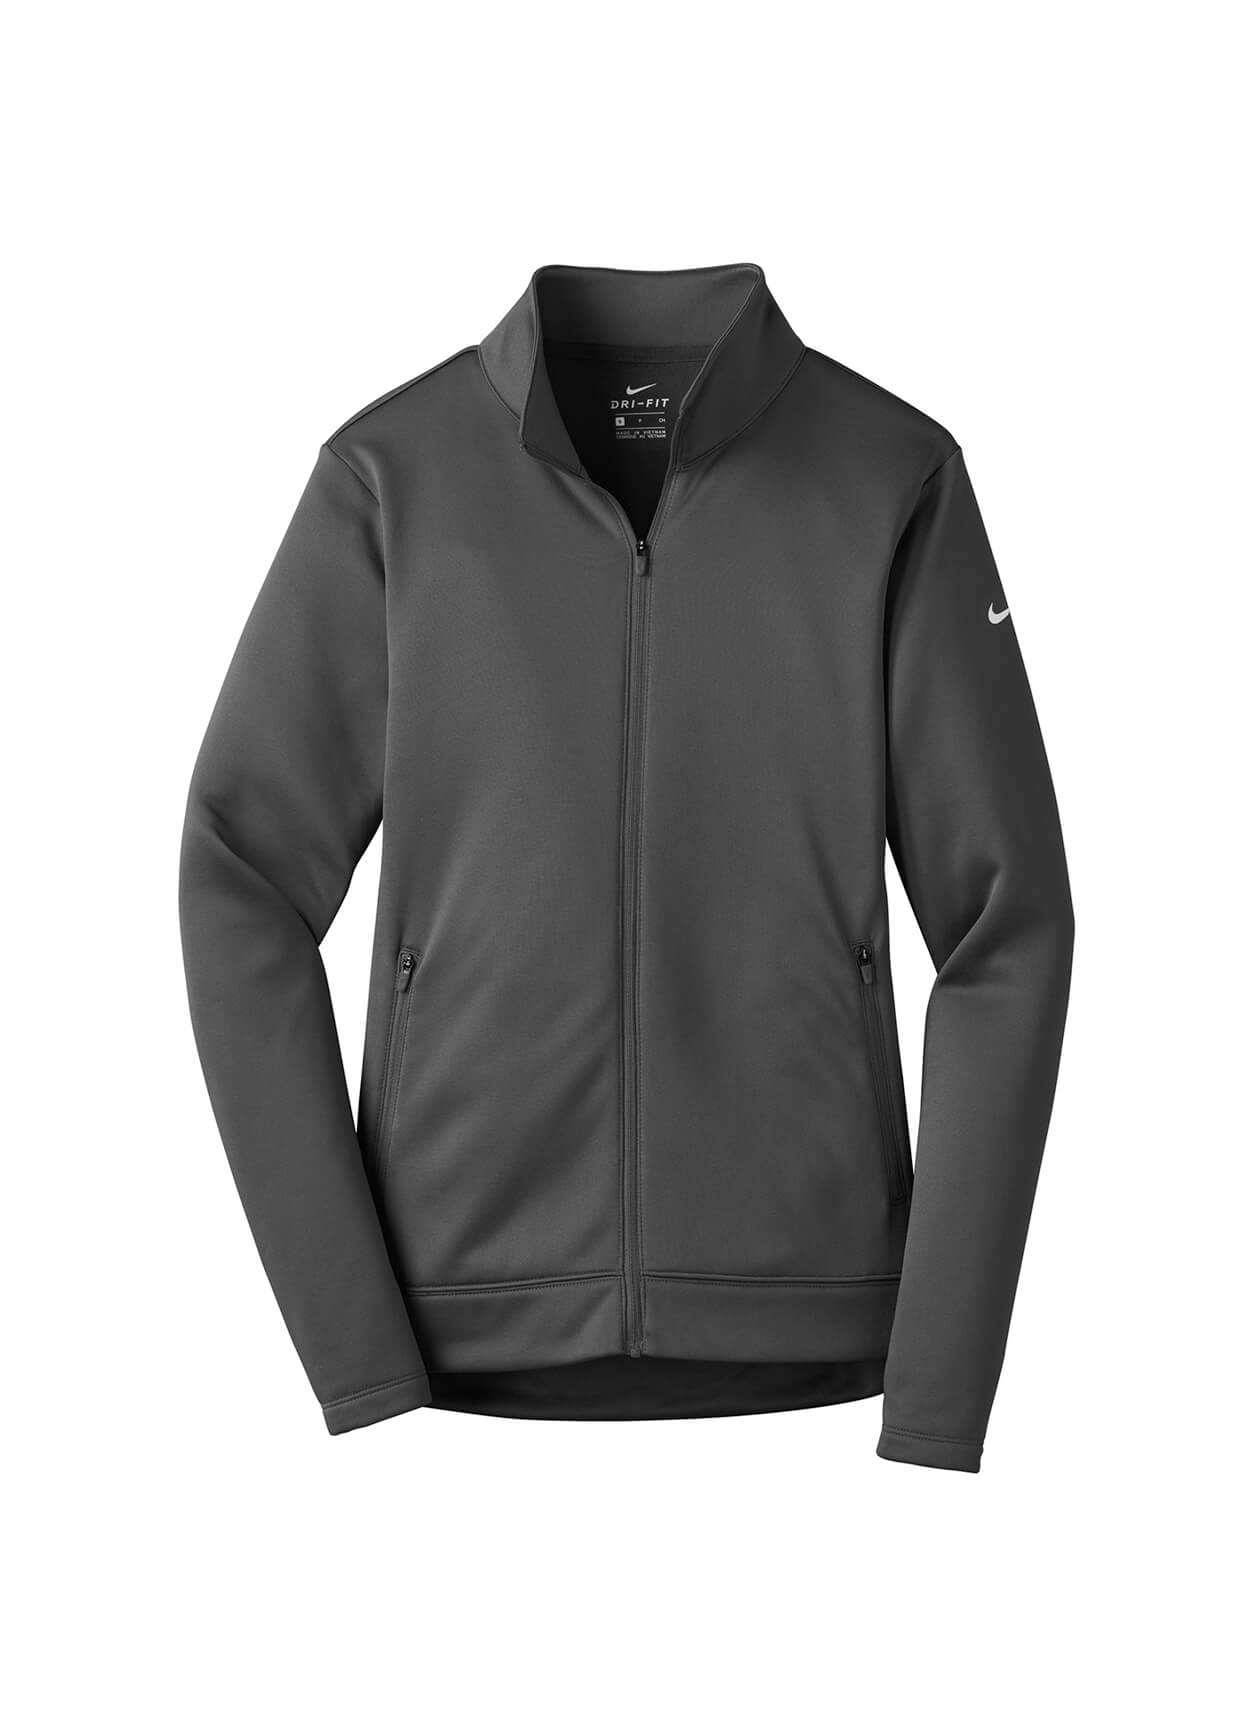 Nike Women's Therma-Fit Jacket